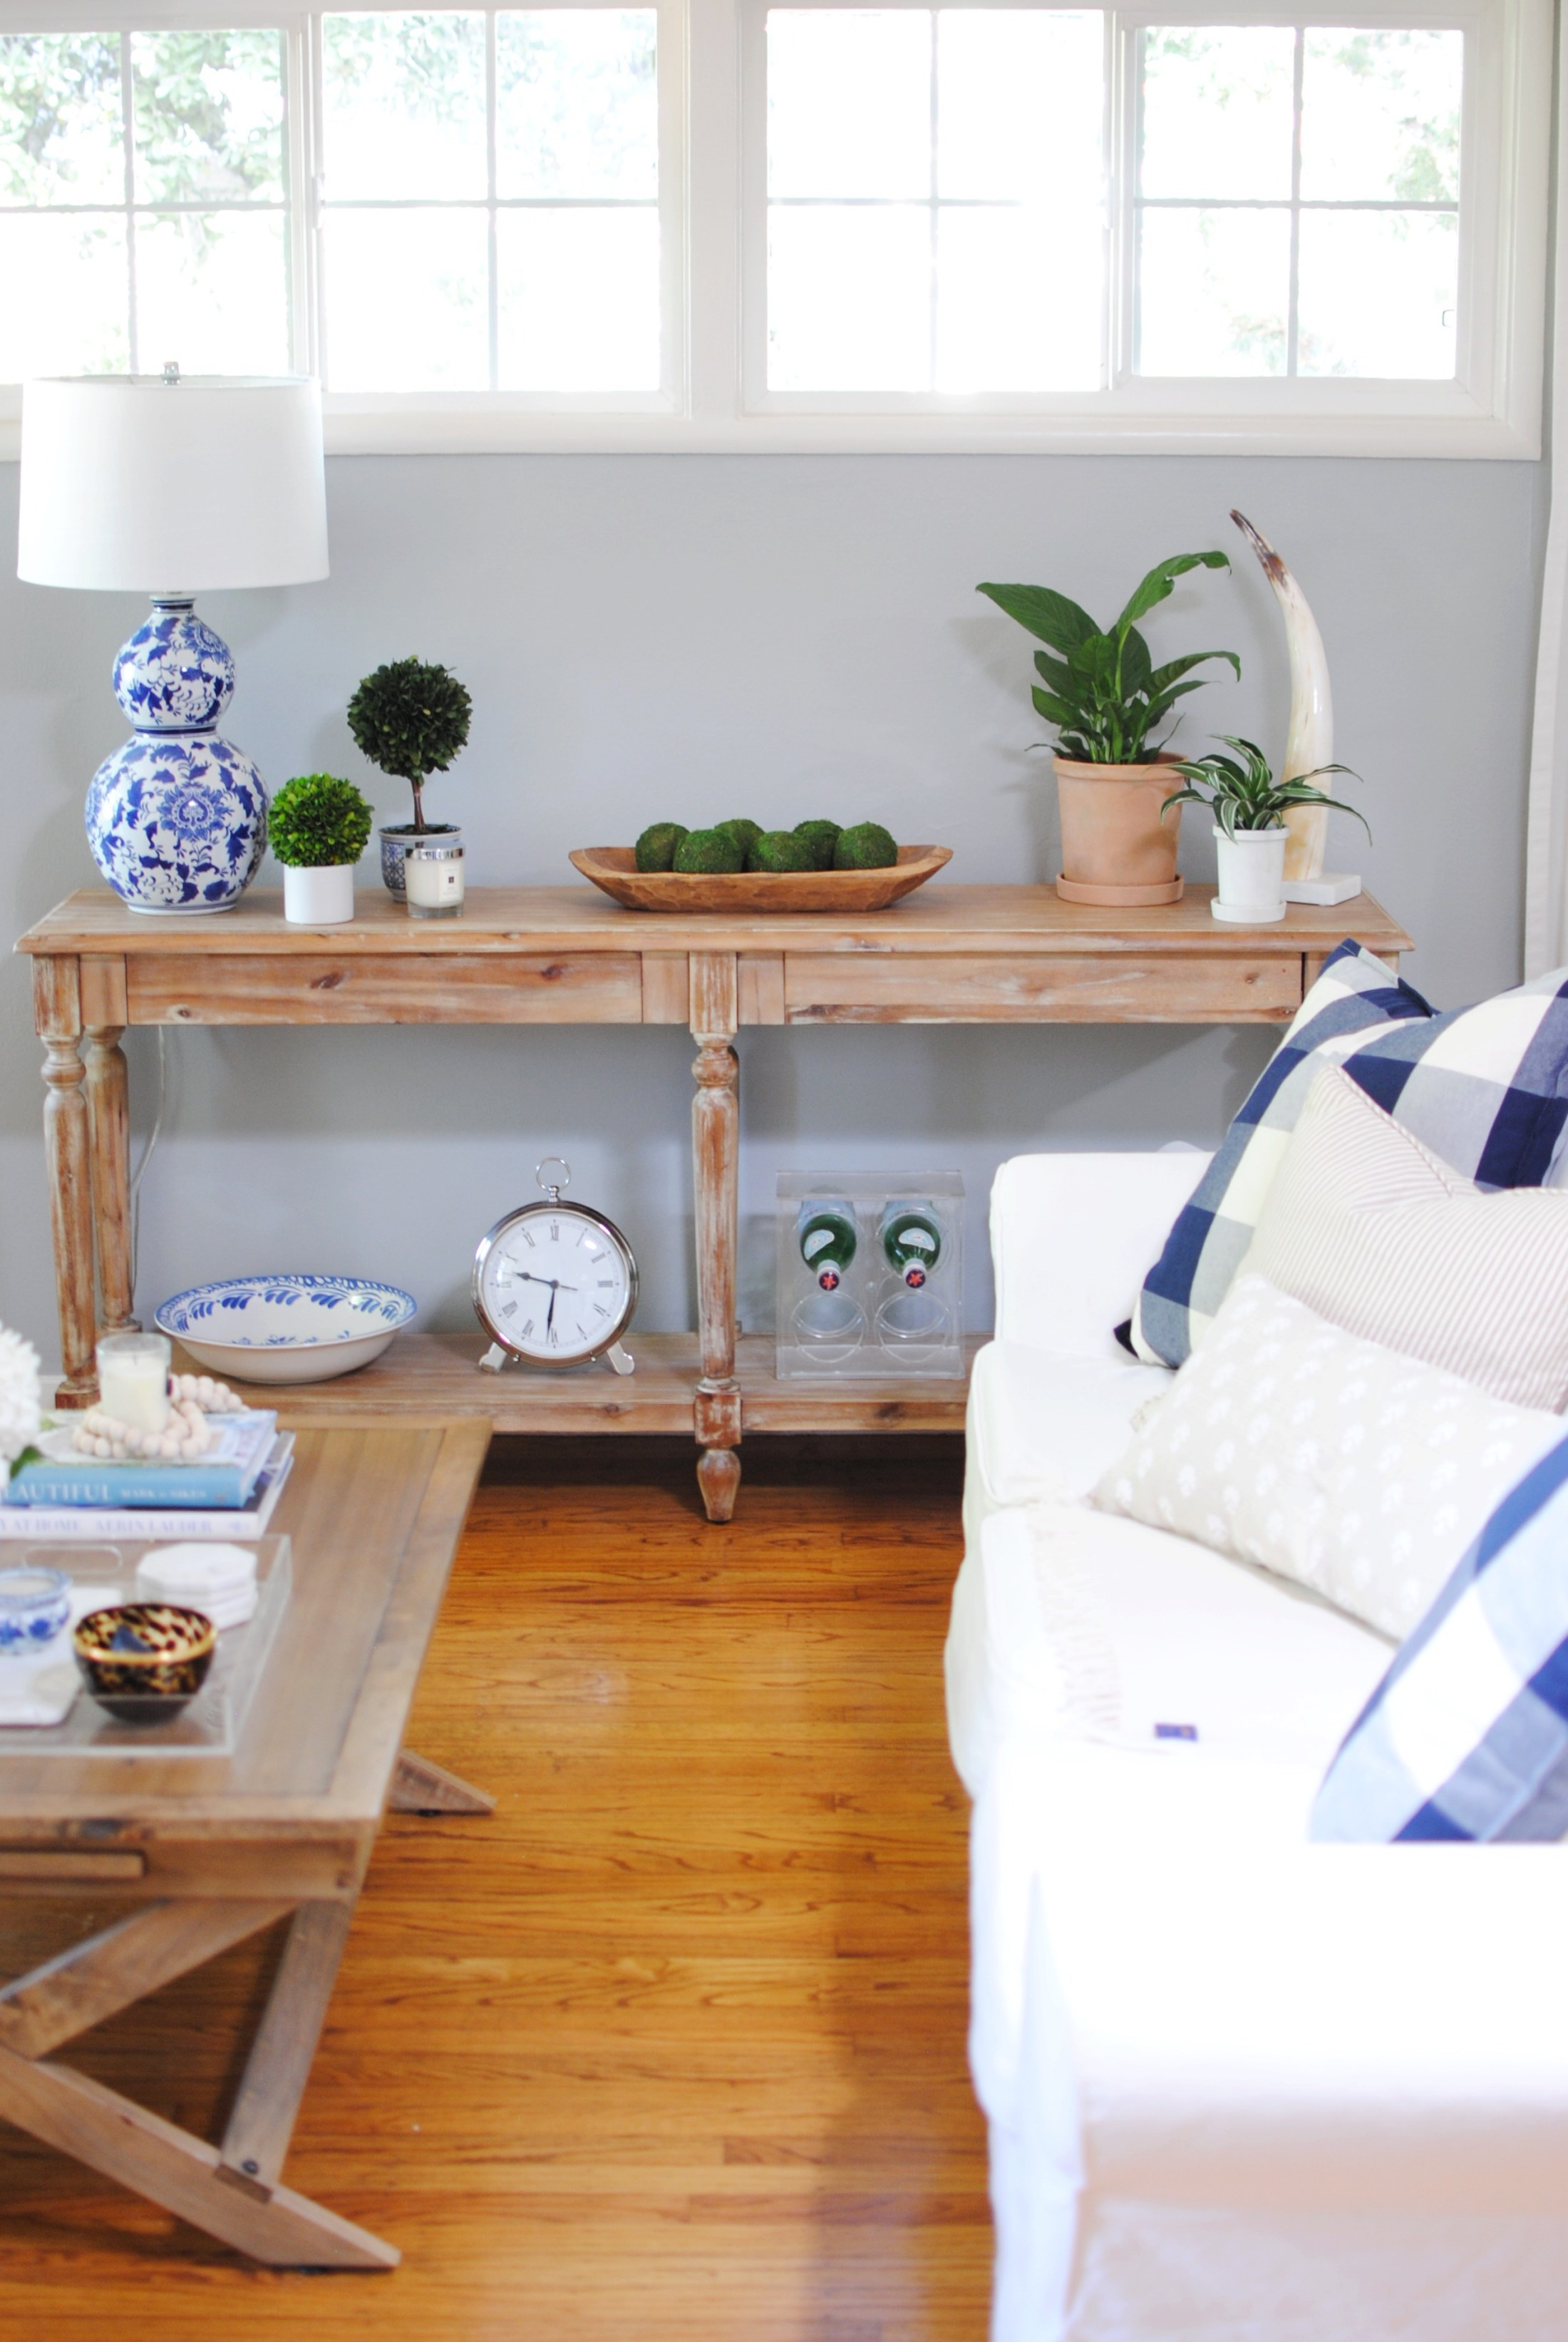 Winter Decorating: 10 Creative Ideas to Decorate your Home